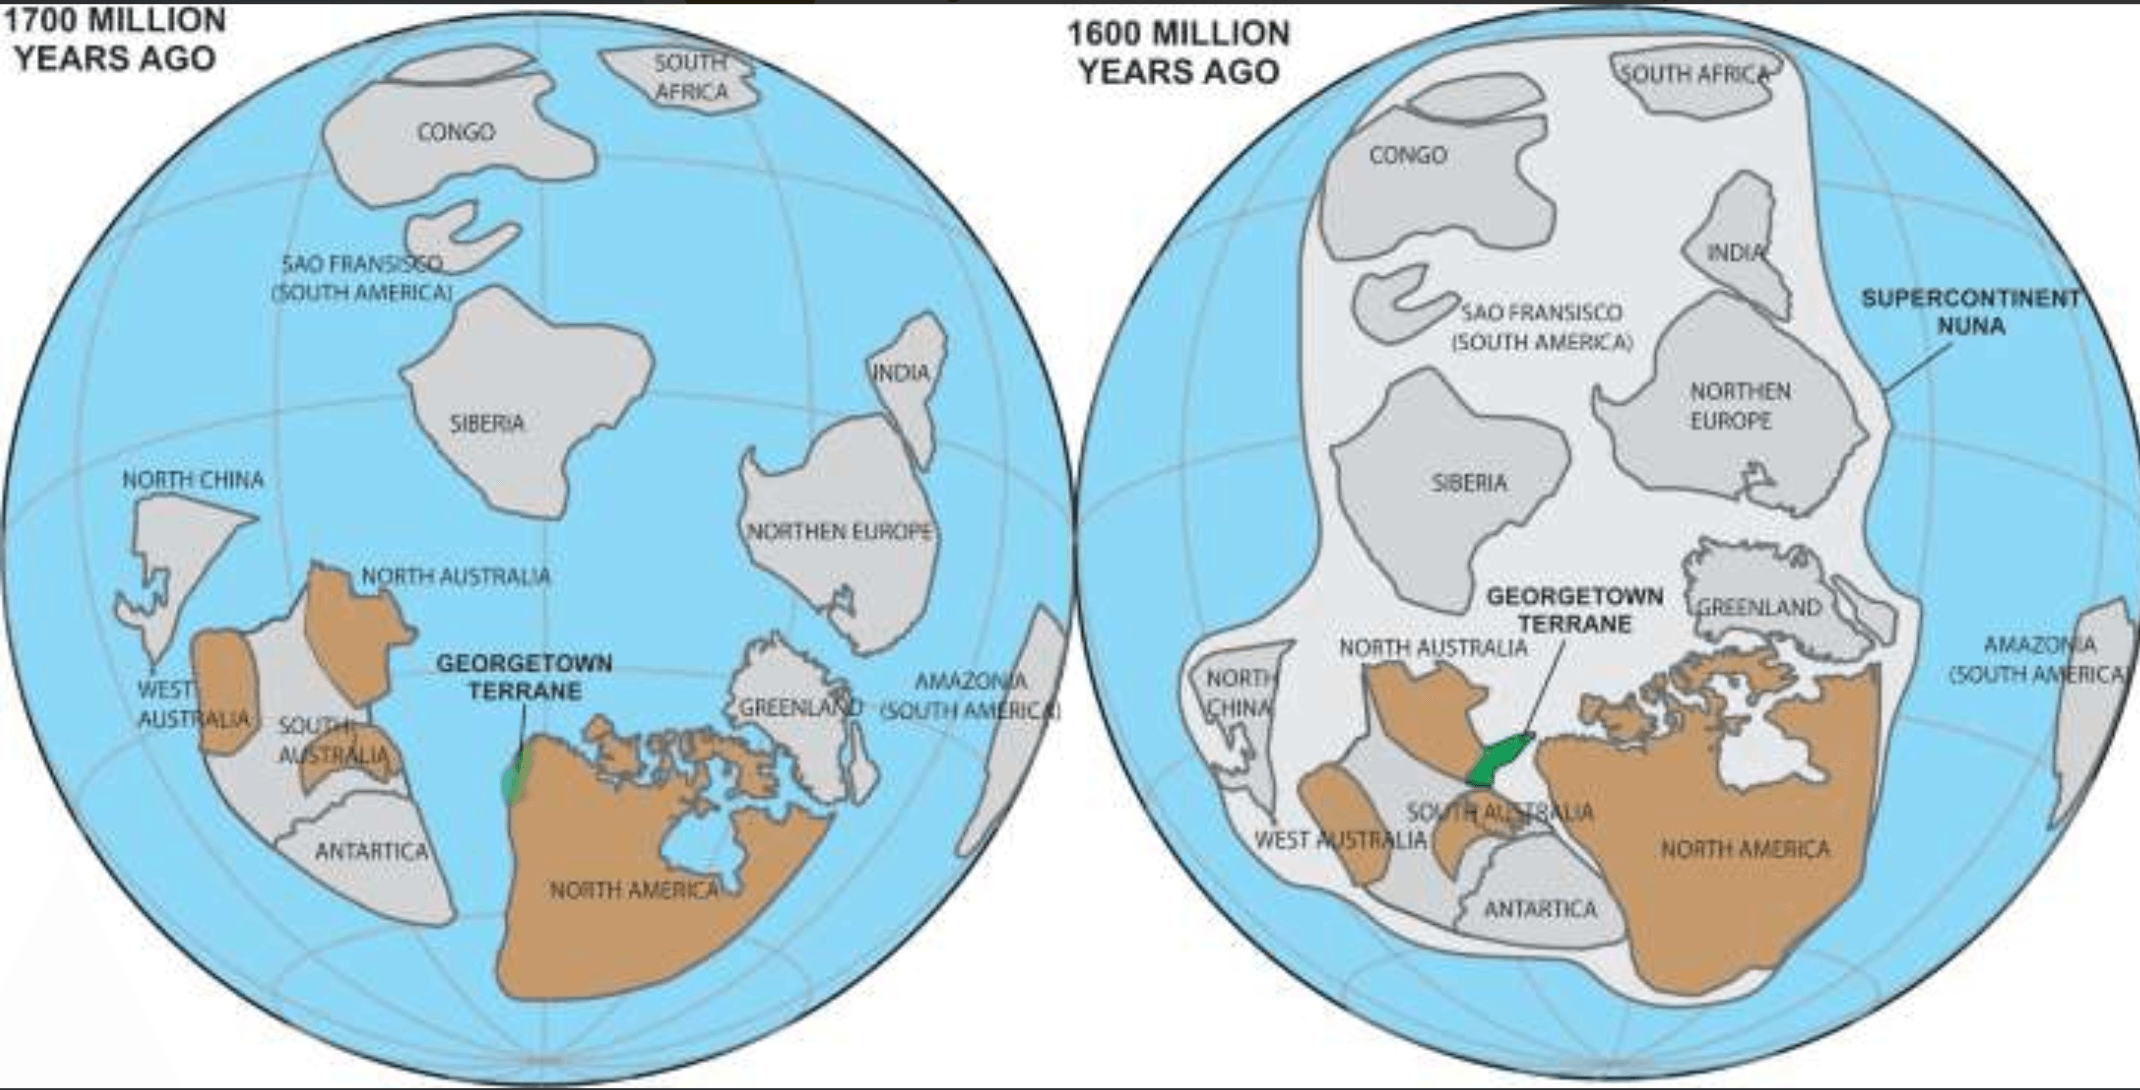 Canada and Australia were connected in the past: Study